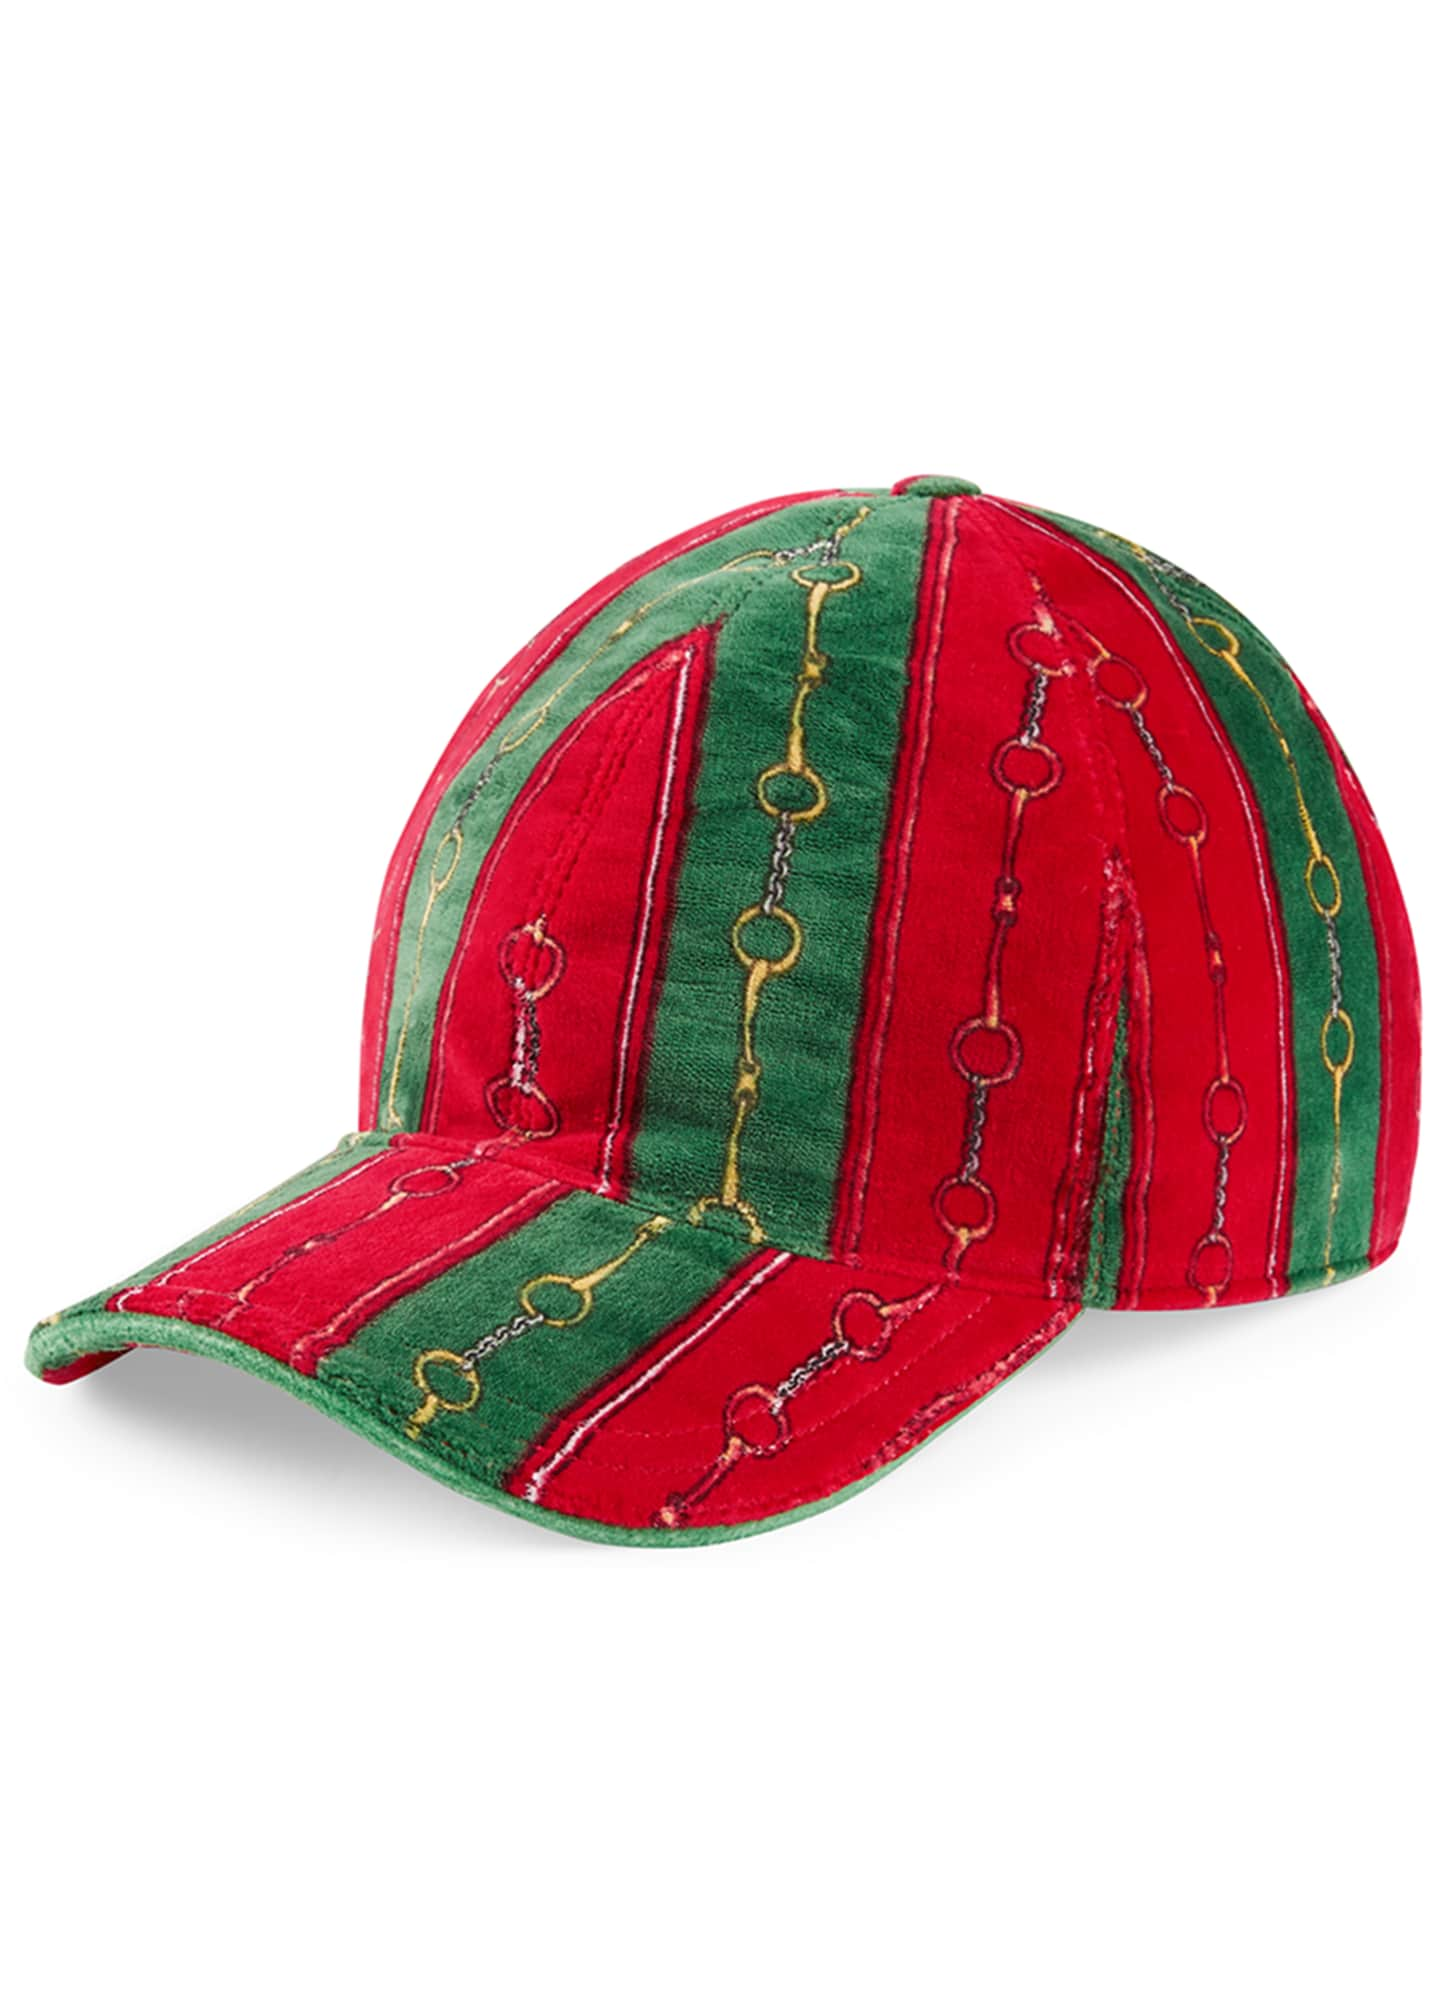 Gucci Men's Printed Chenille Baseball Hat